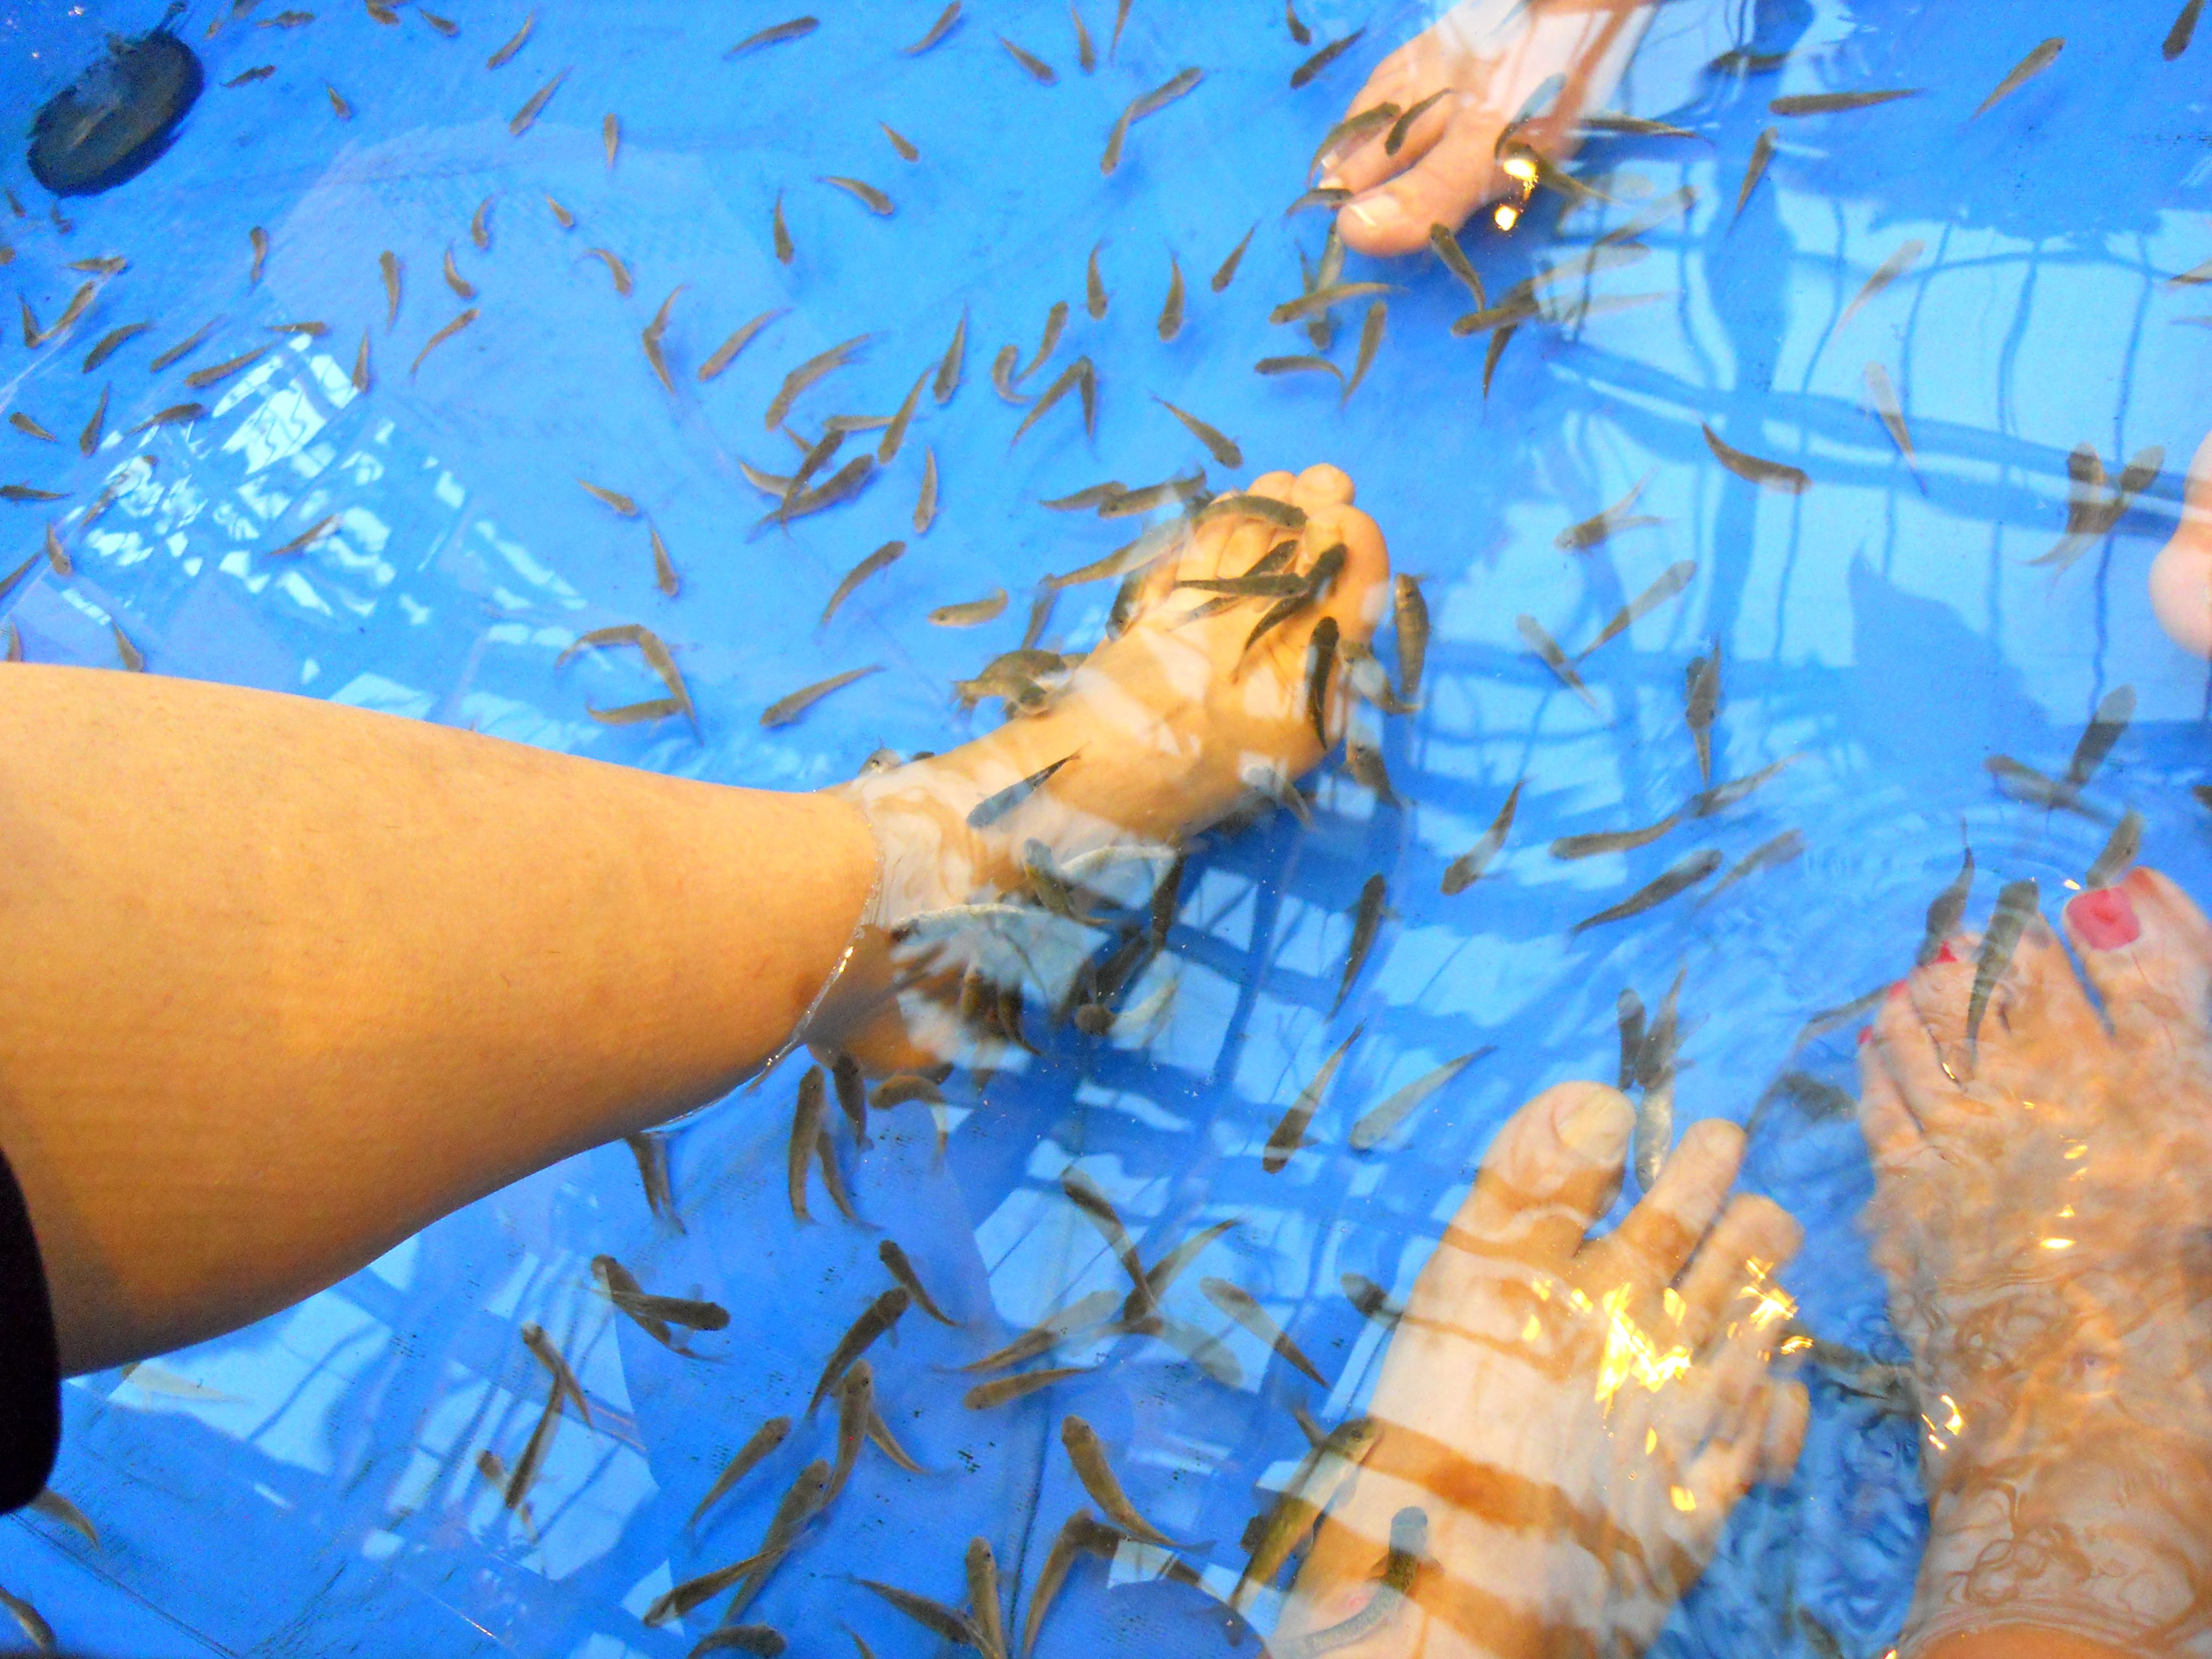 Getting a fish pedicure in kyoto japan very tickley dr for Doctor fish pedicure